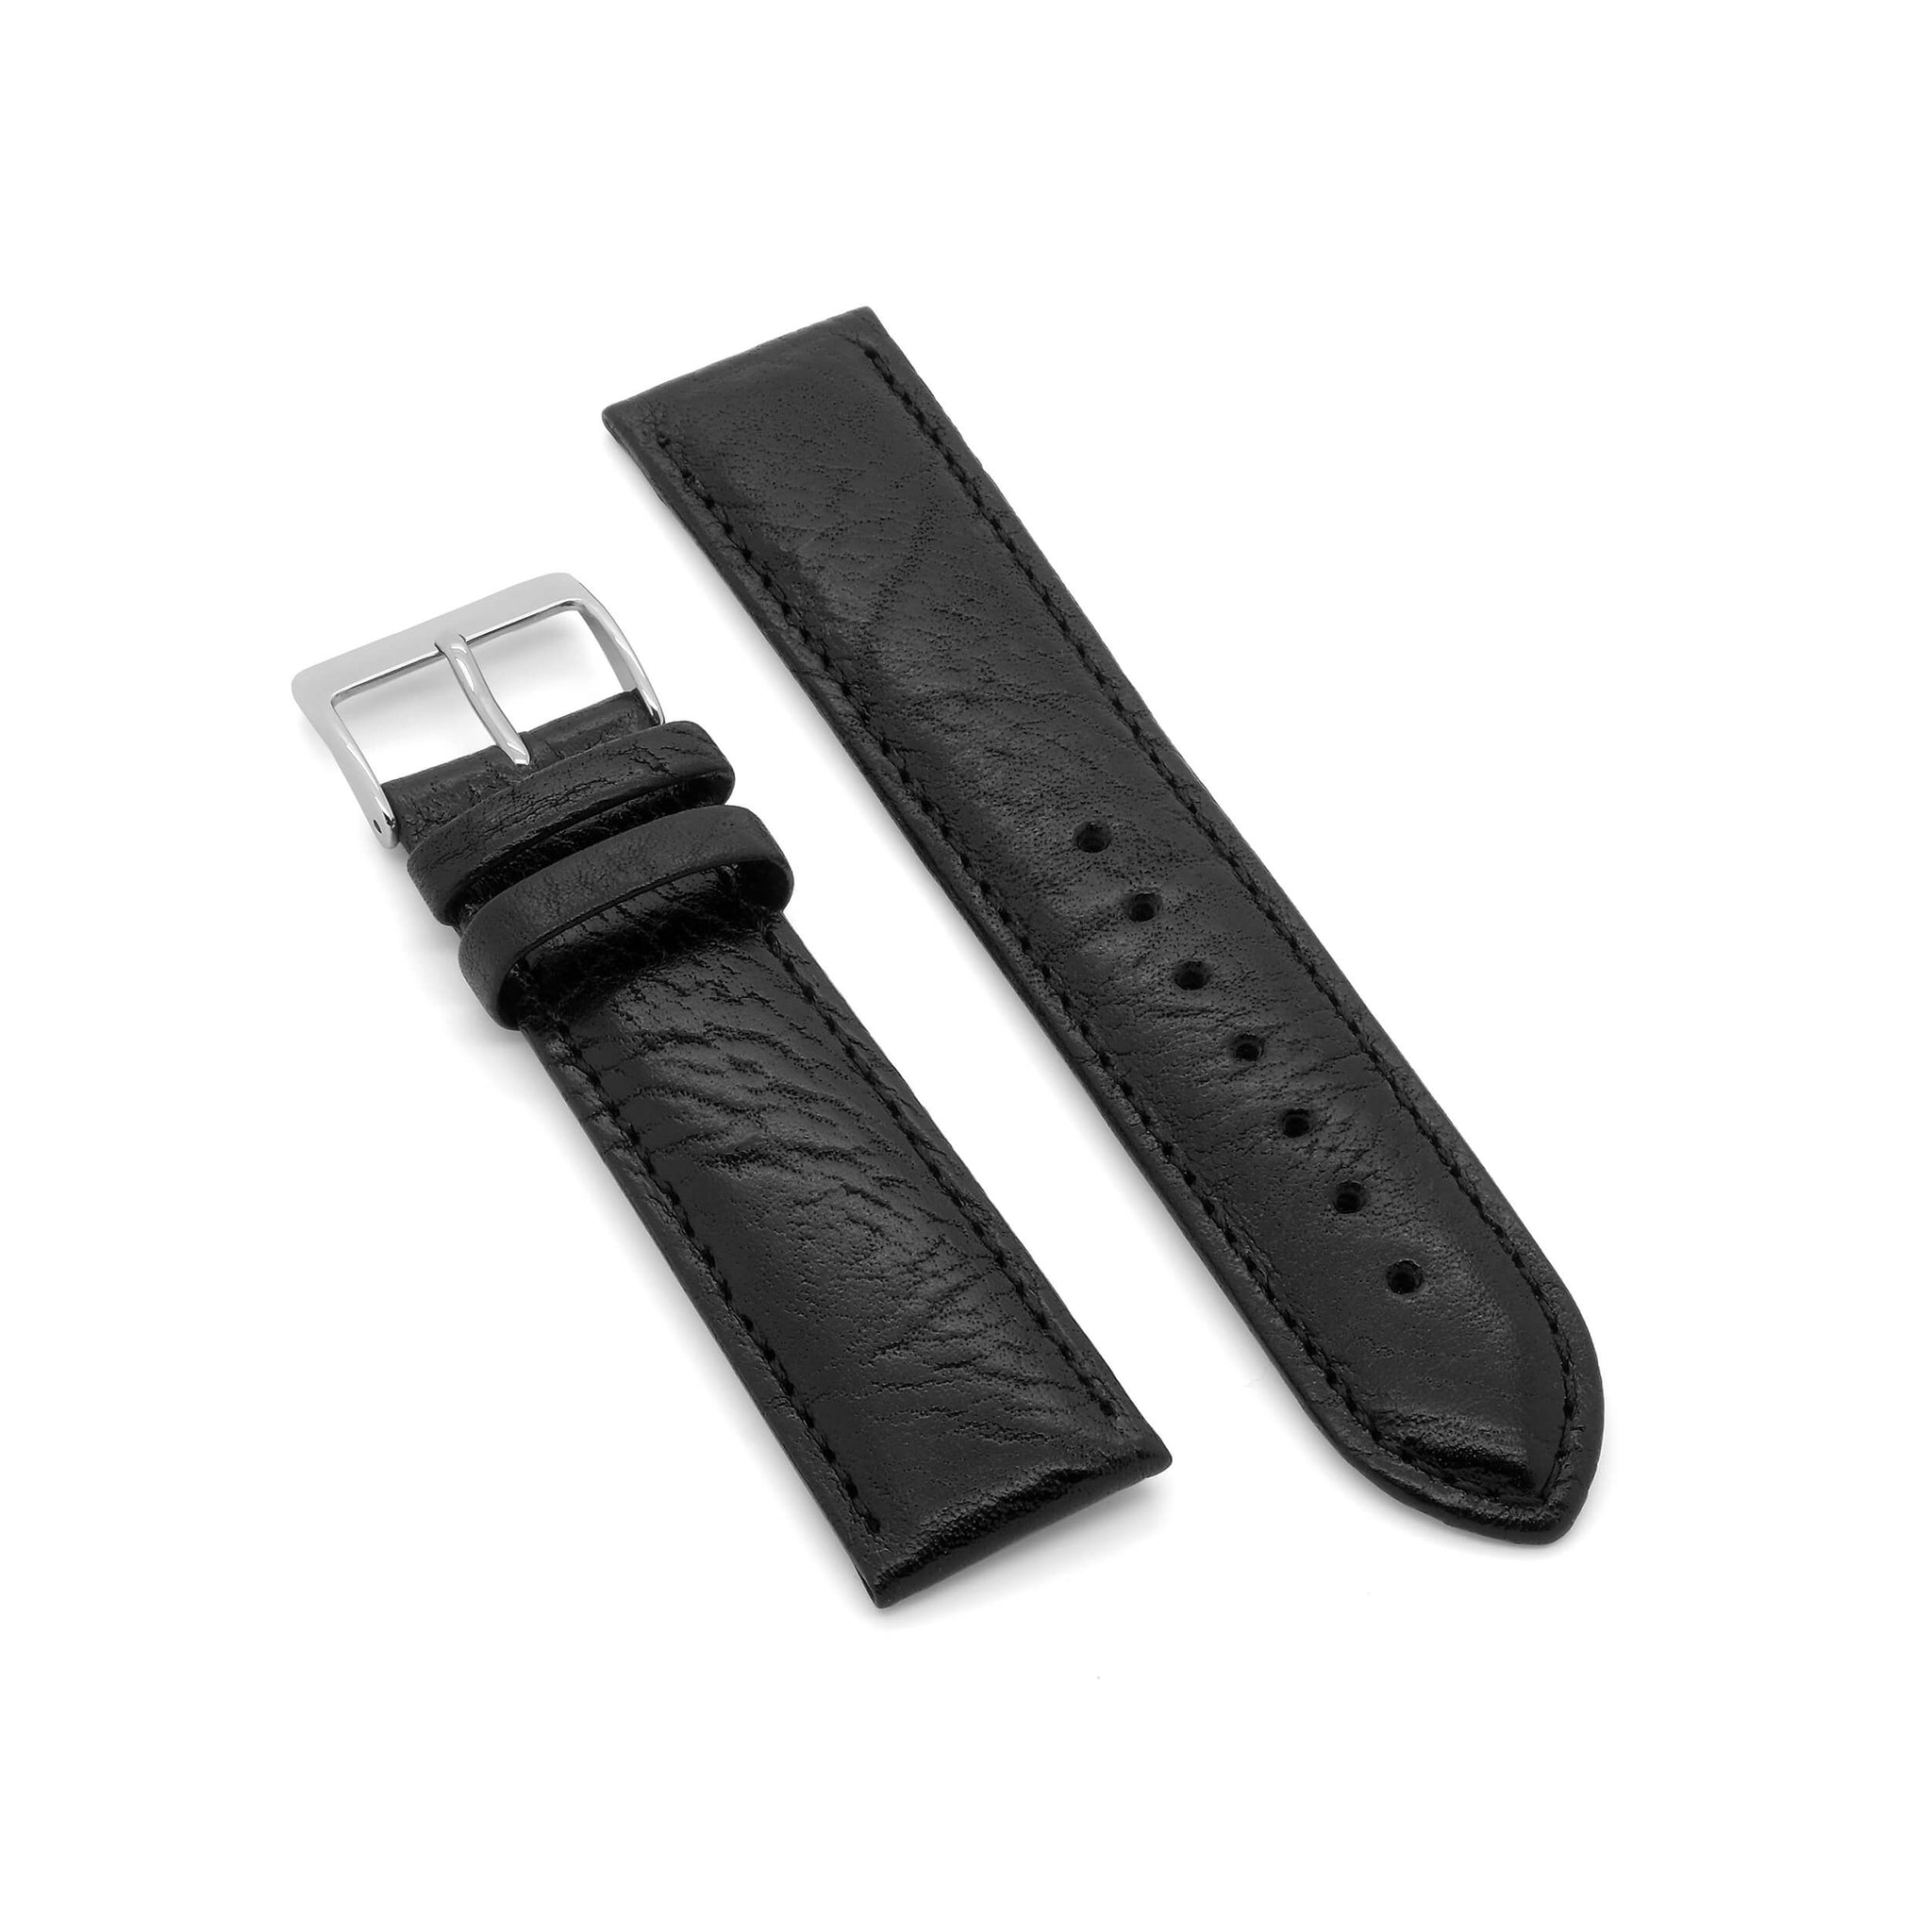 'Padded Bison' Genuine Leather Watch Strap (Black)